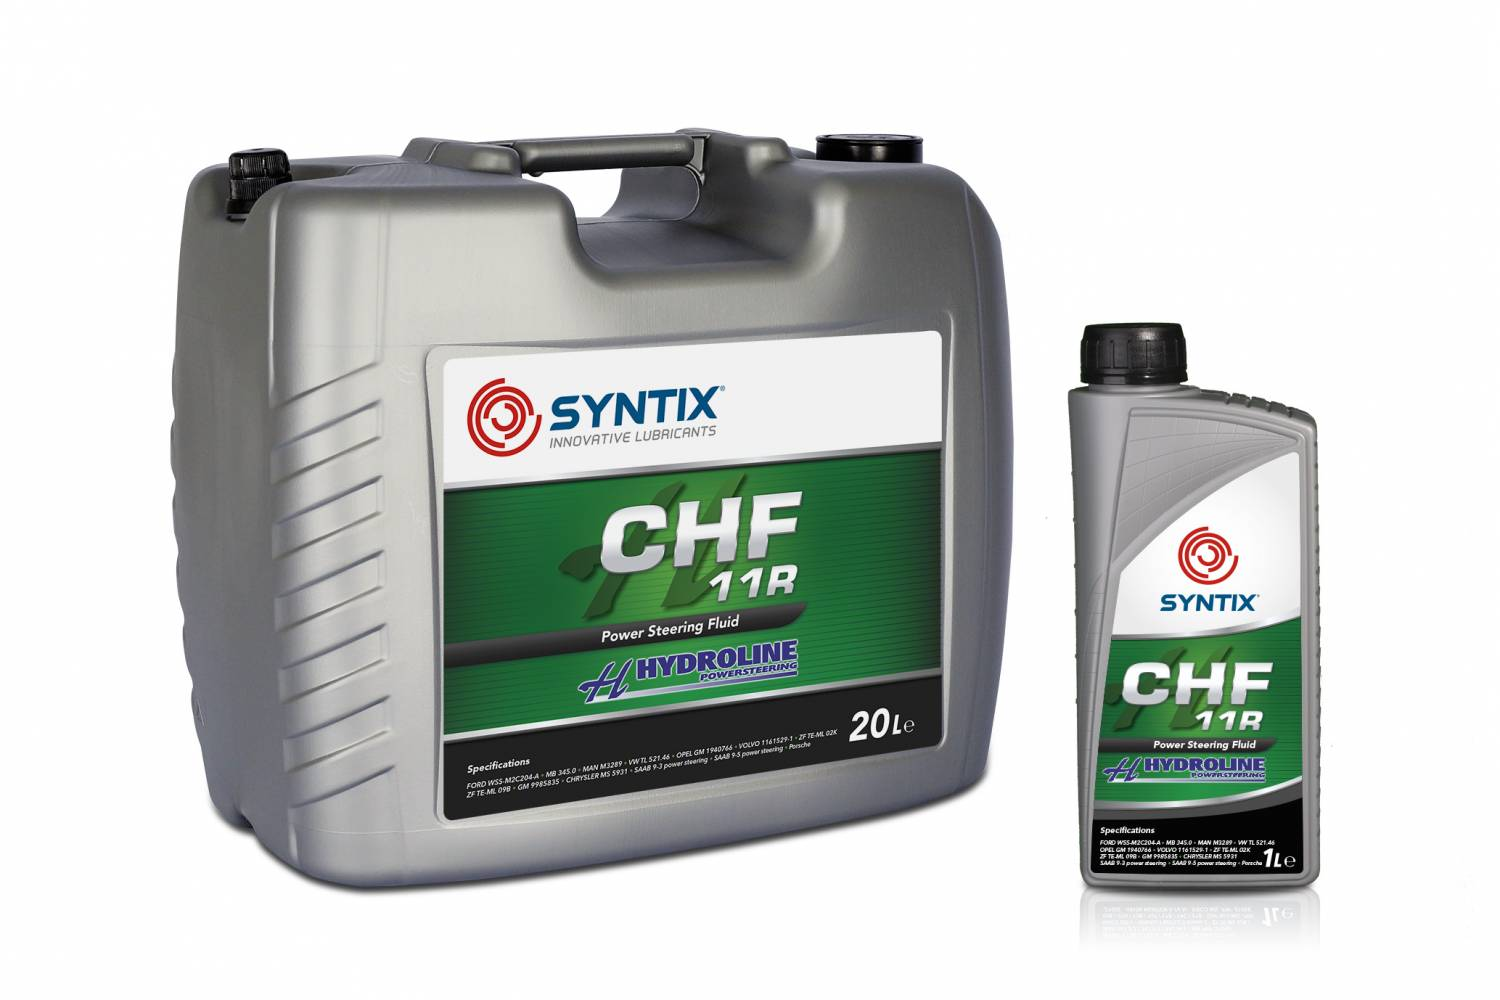 Syntix Joint Label - CHF 11R Power Steering Fluid for Hydroline - Hydroline Powersteering - Syntix Innovative Lubricants